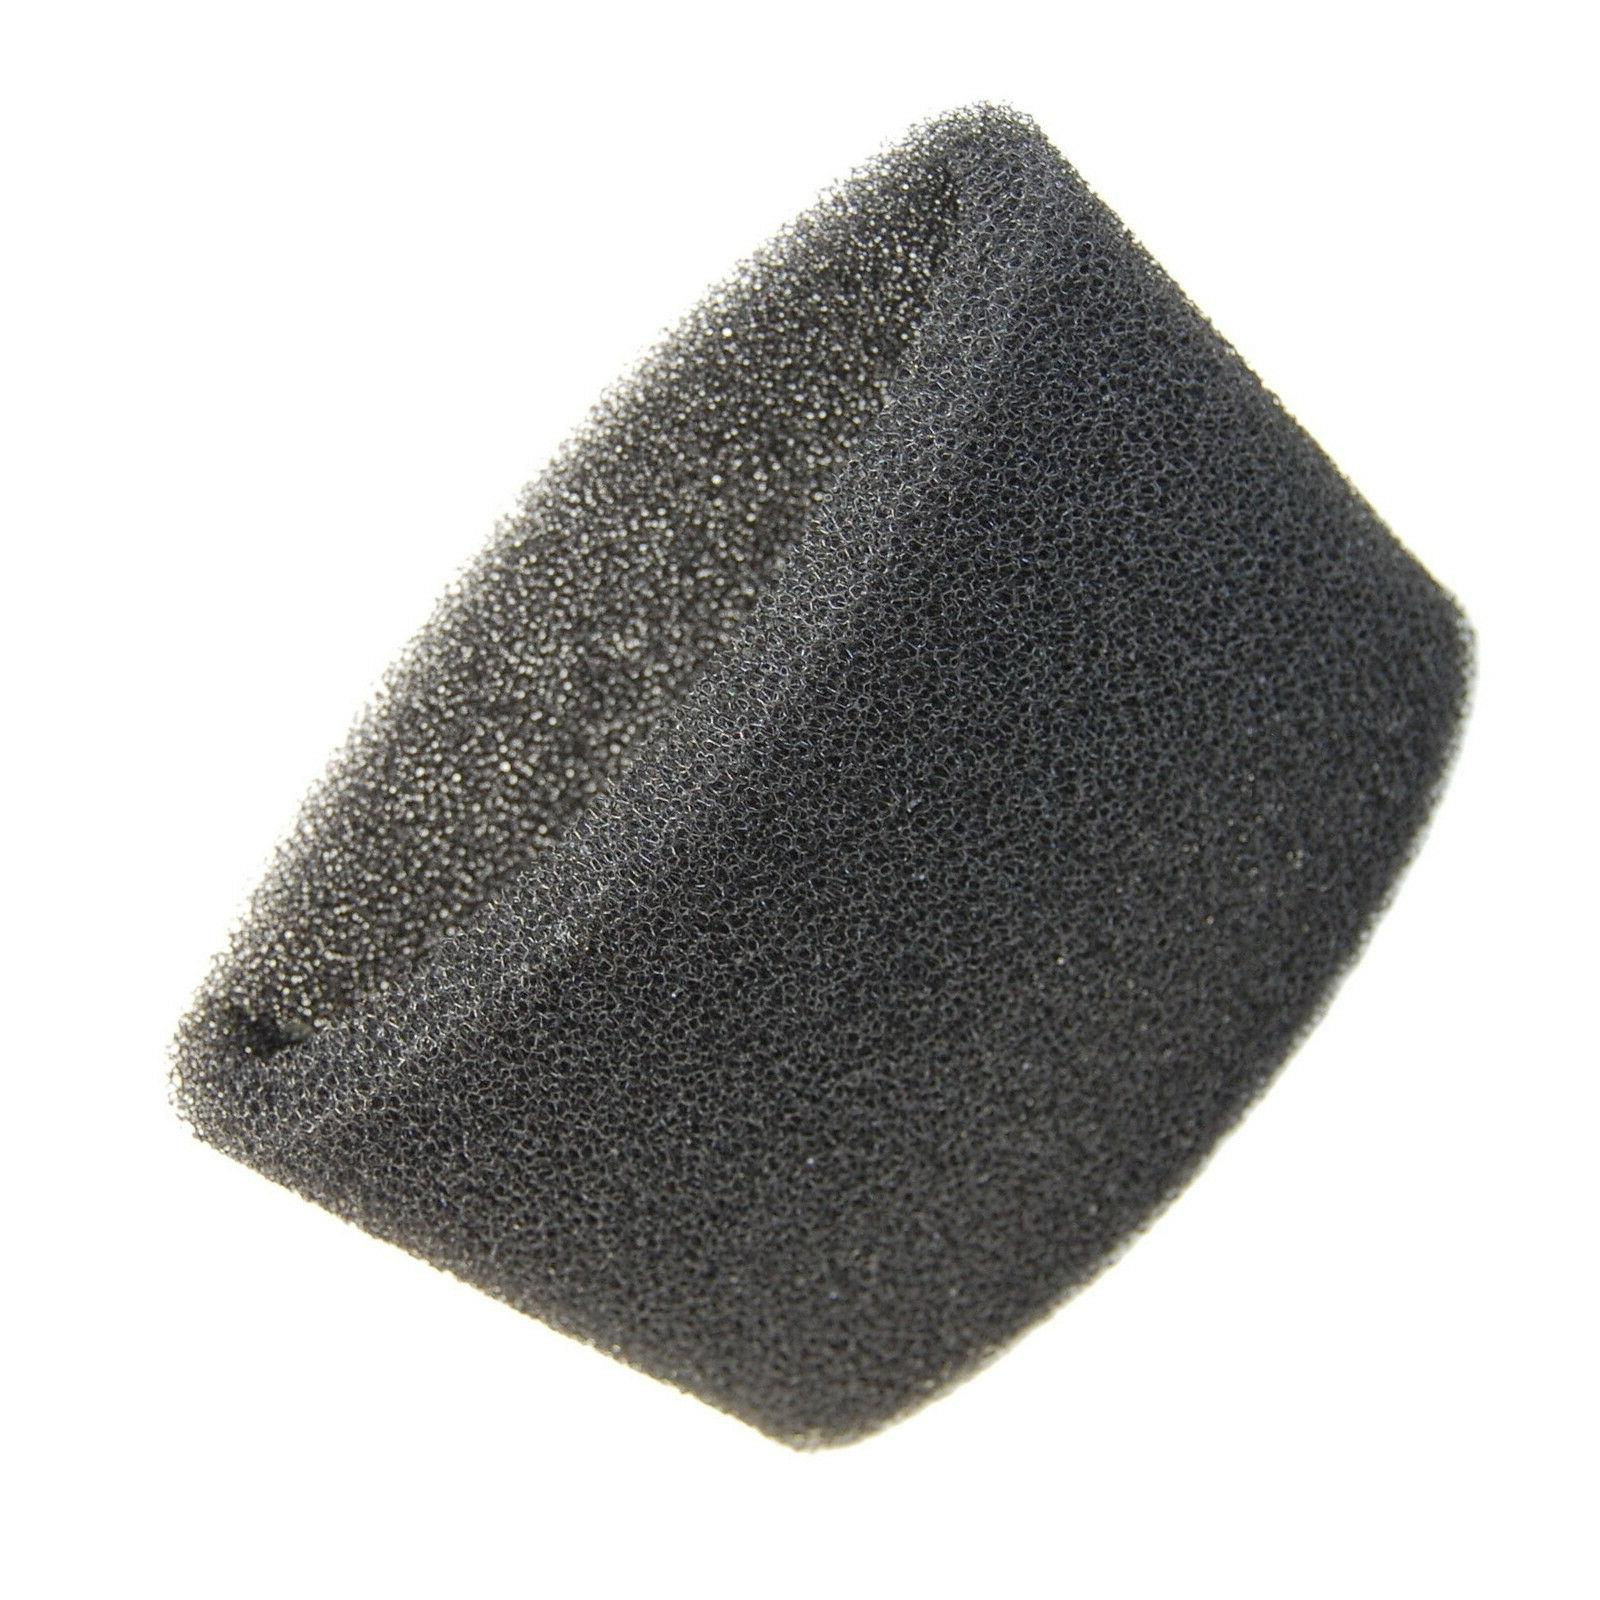 HQRP Foam Filter Sleeve for Vacuums, 905-85-00 Replacement